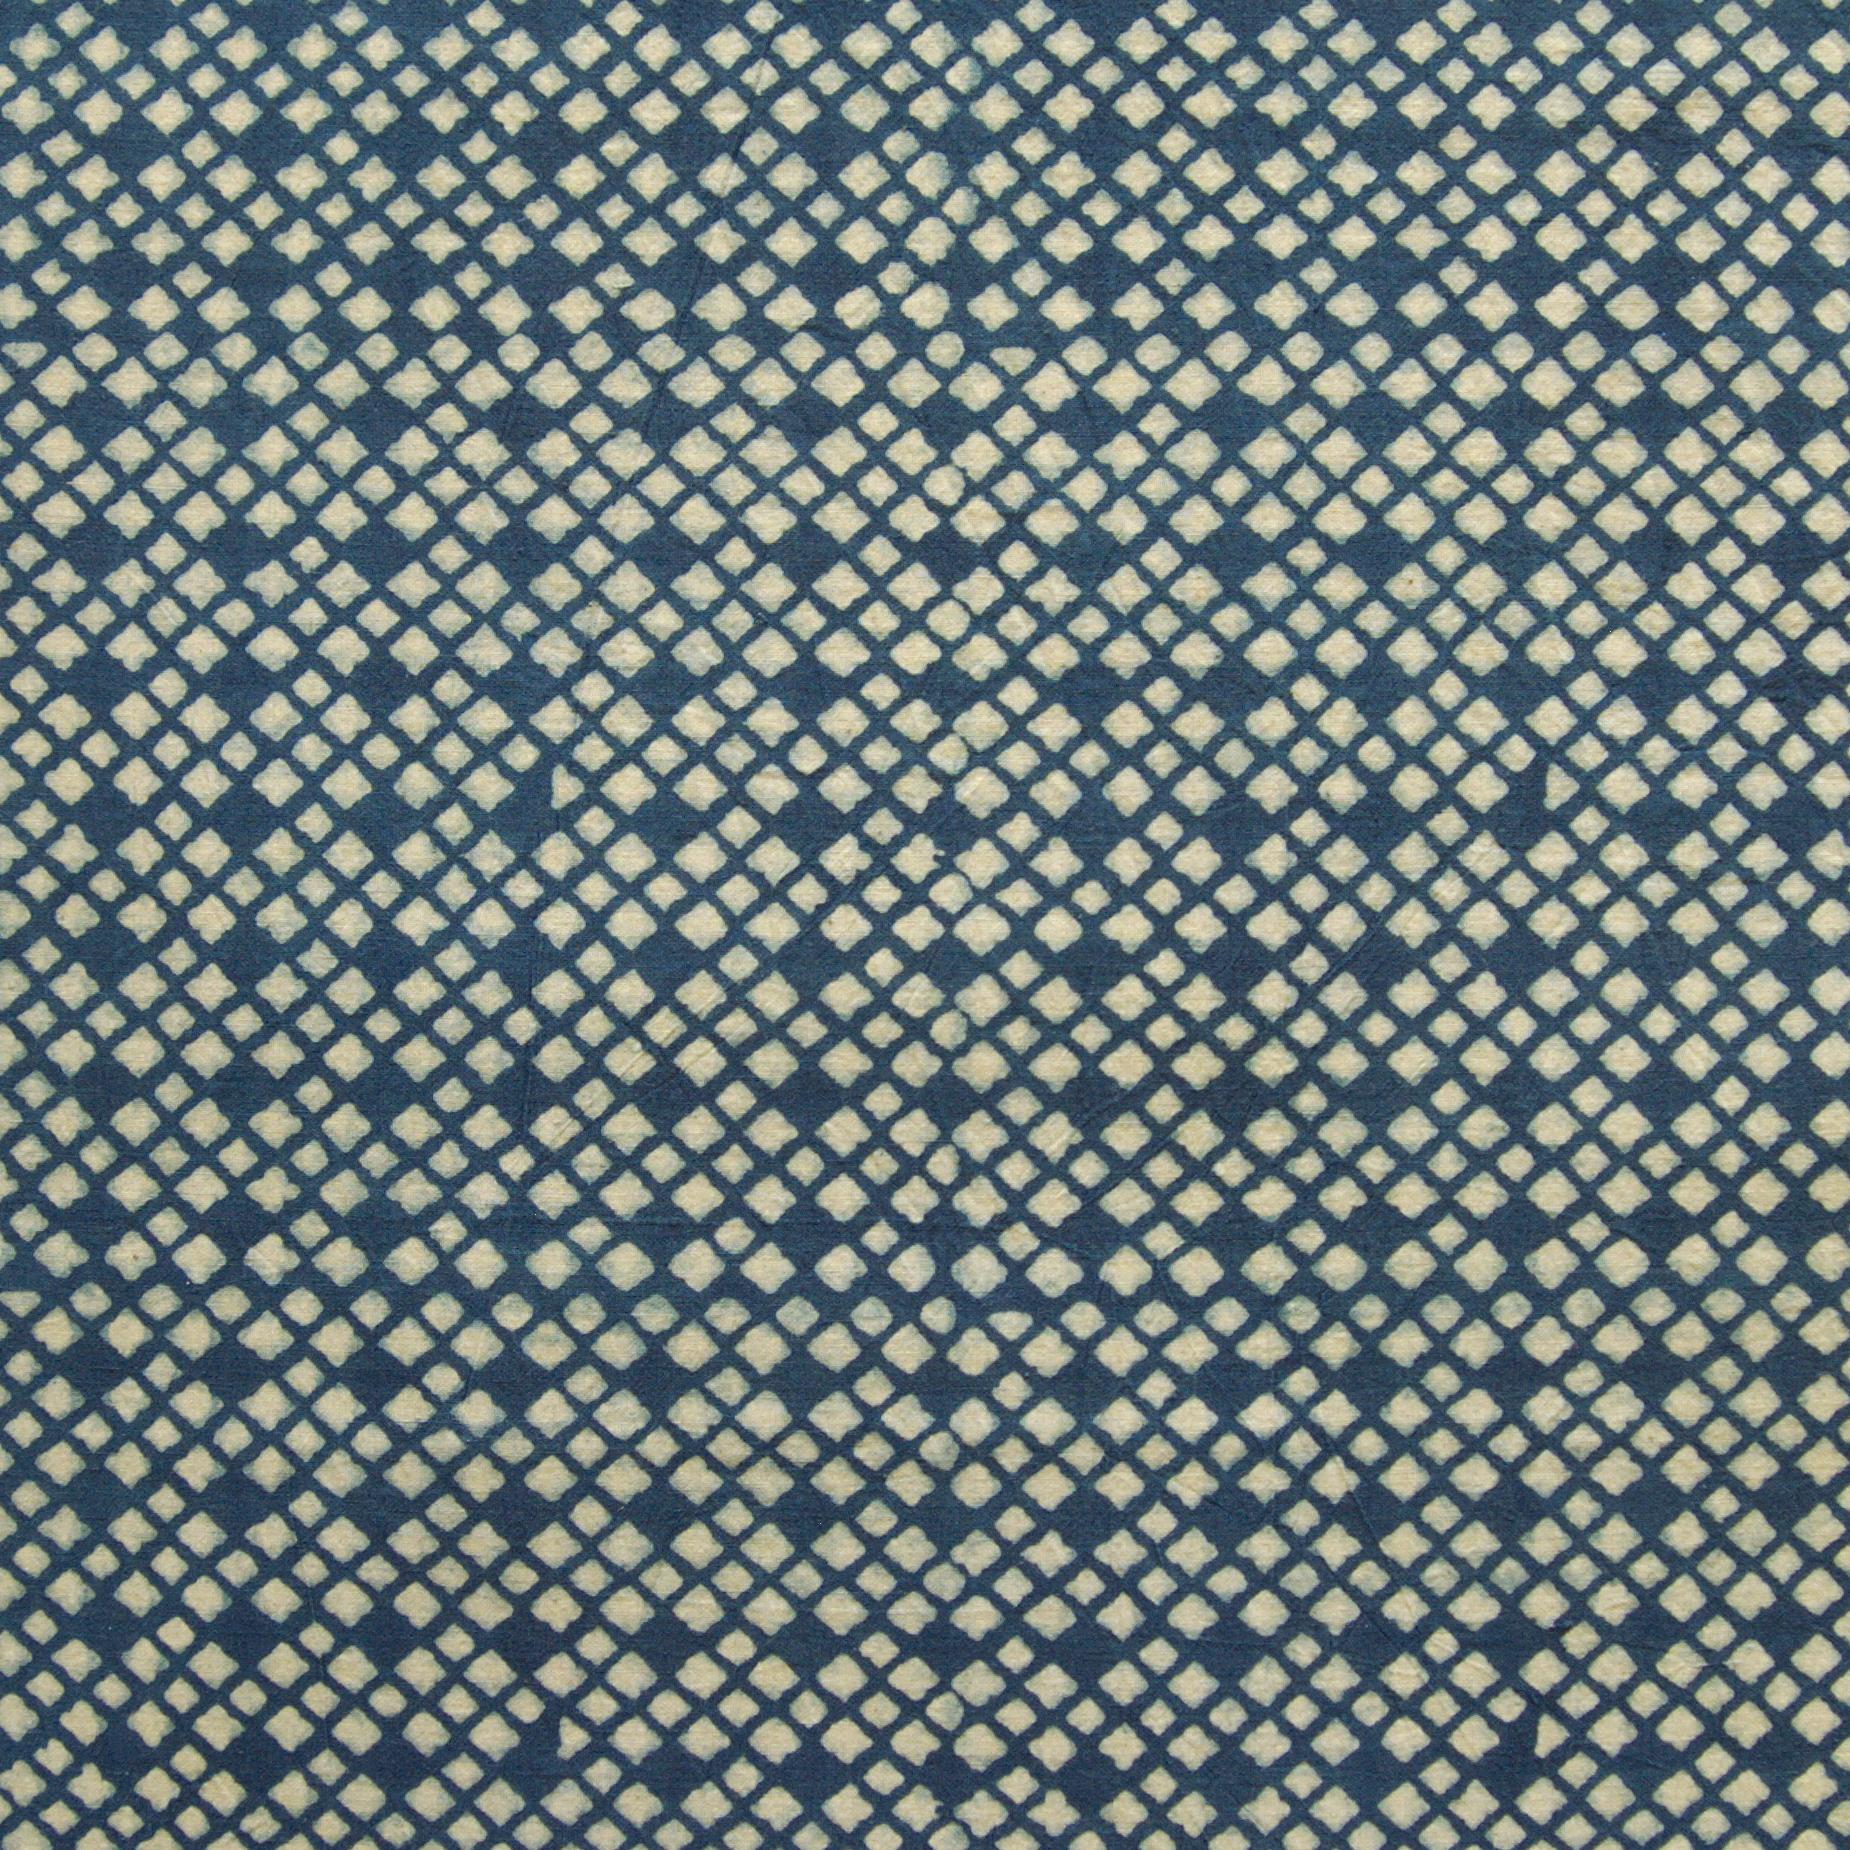 SIK28 - Indian Woodblock-Printed Cotton Fabric - Mosaic Design - Indigo Dye - Flat